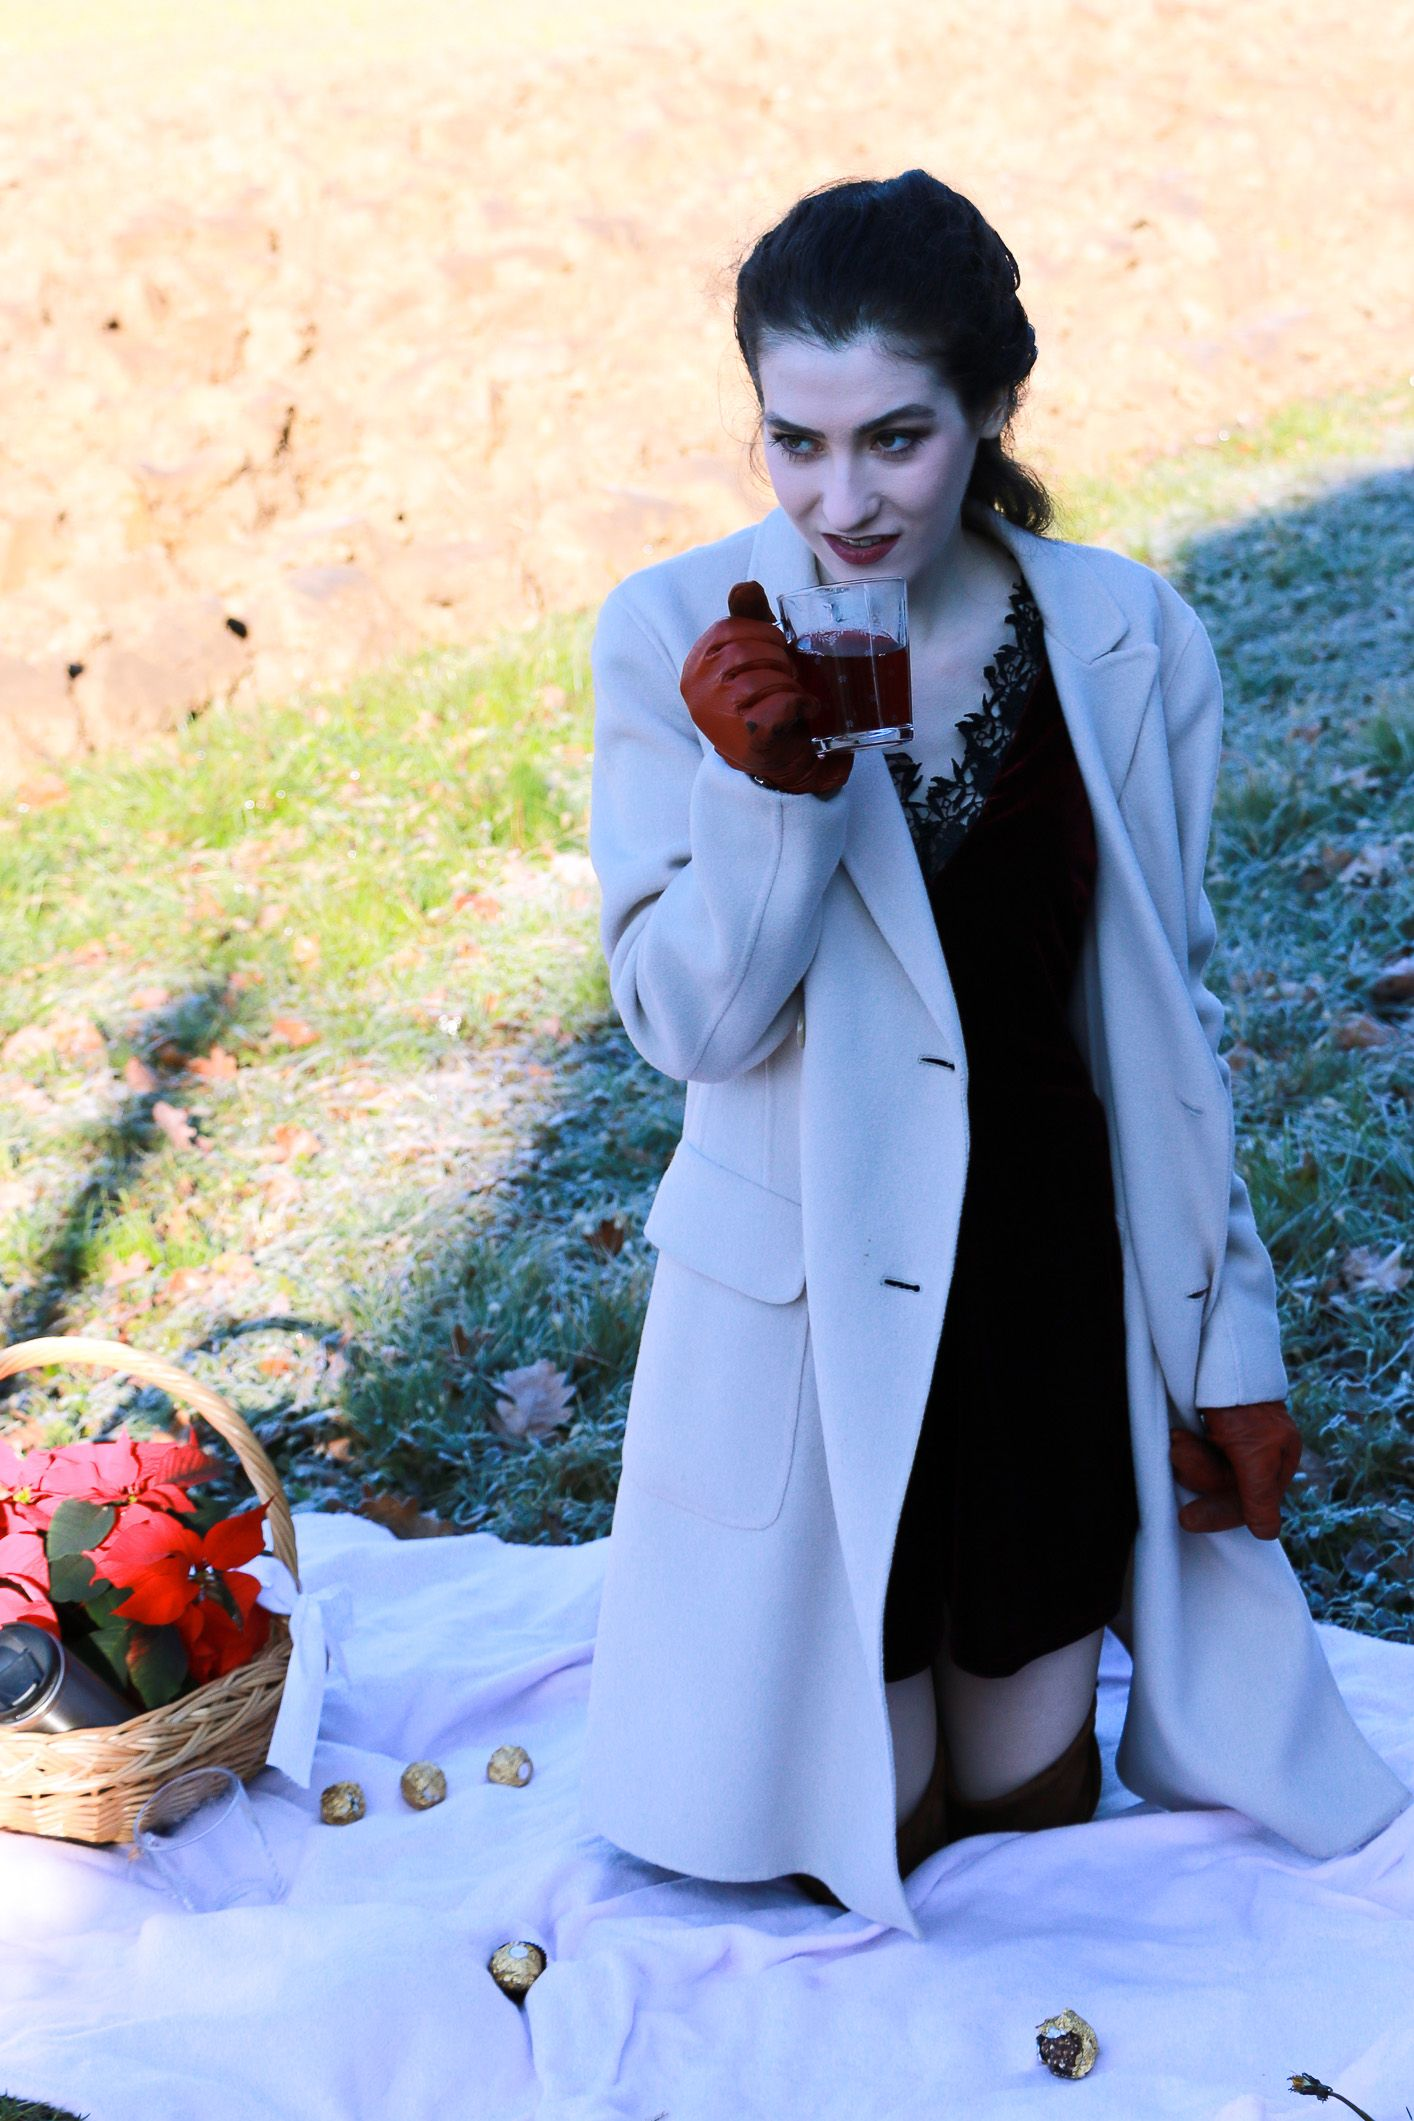 what to wear to outdoor party in winter